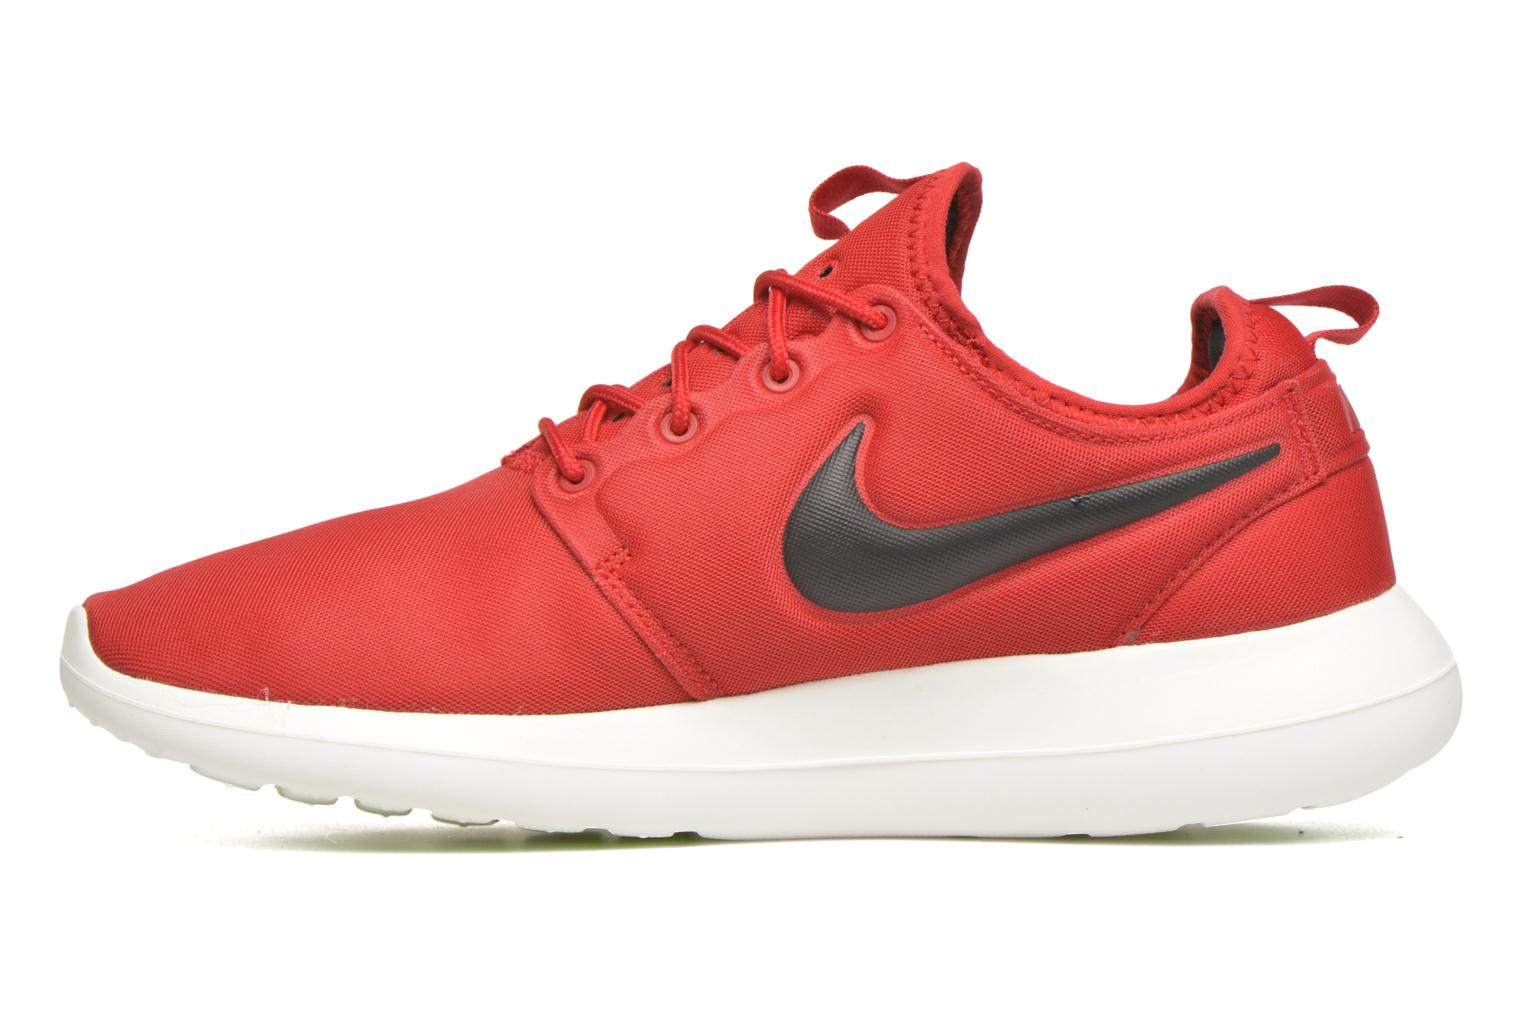 Nike Roshe Two Gym Red/Black-Sail-Volt